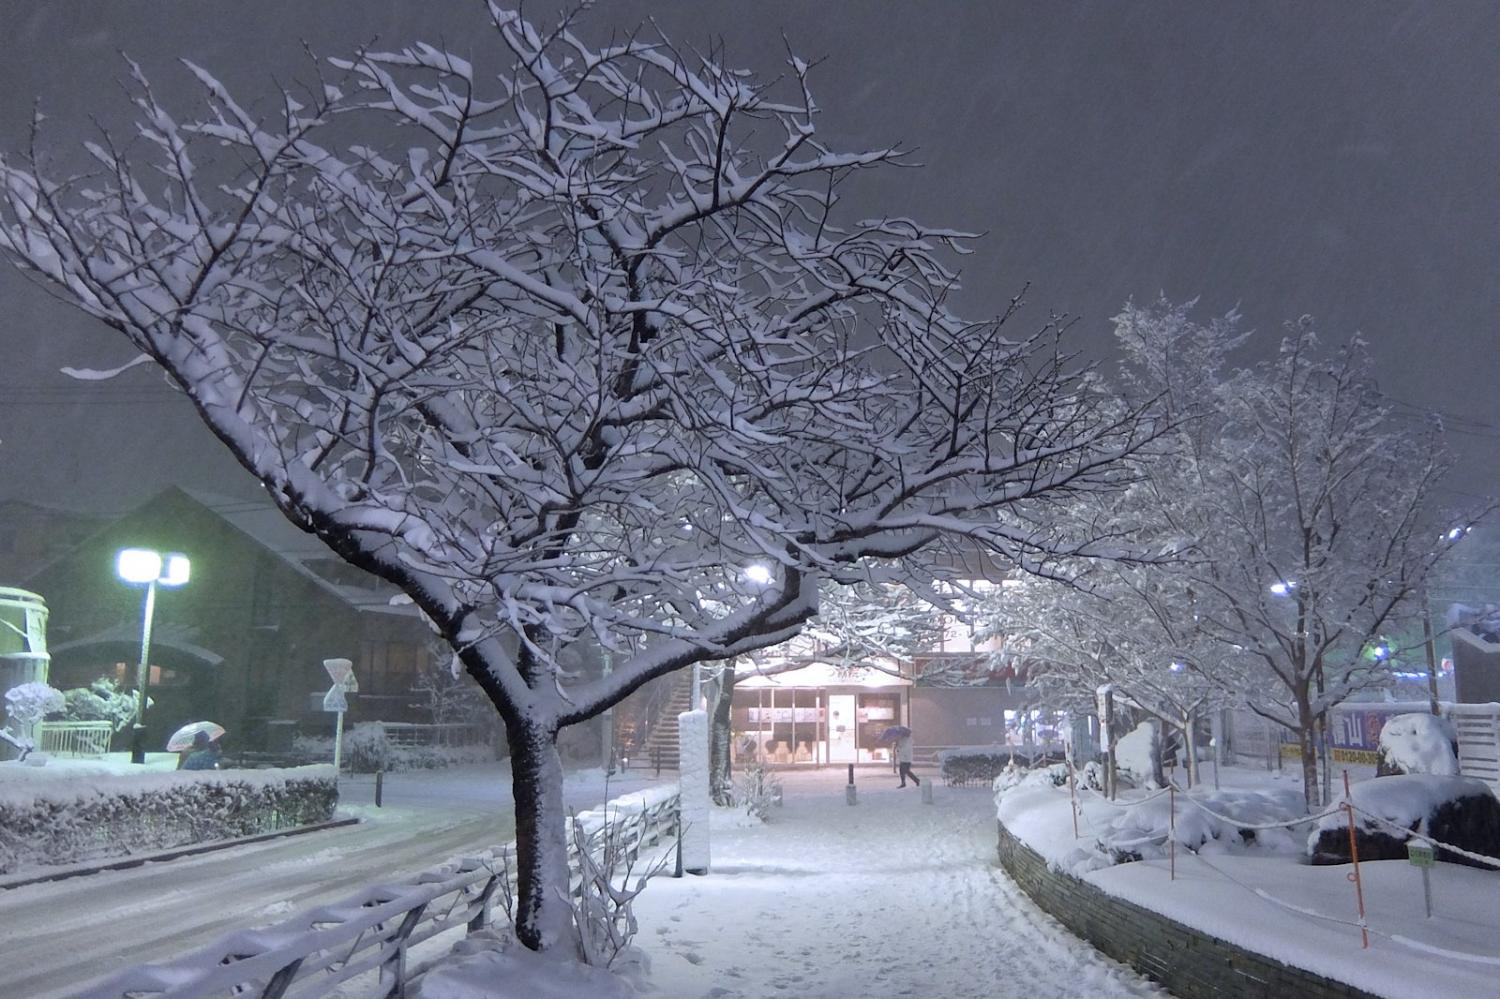 At night of heavy snow, the Nerima-Takanodai station square